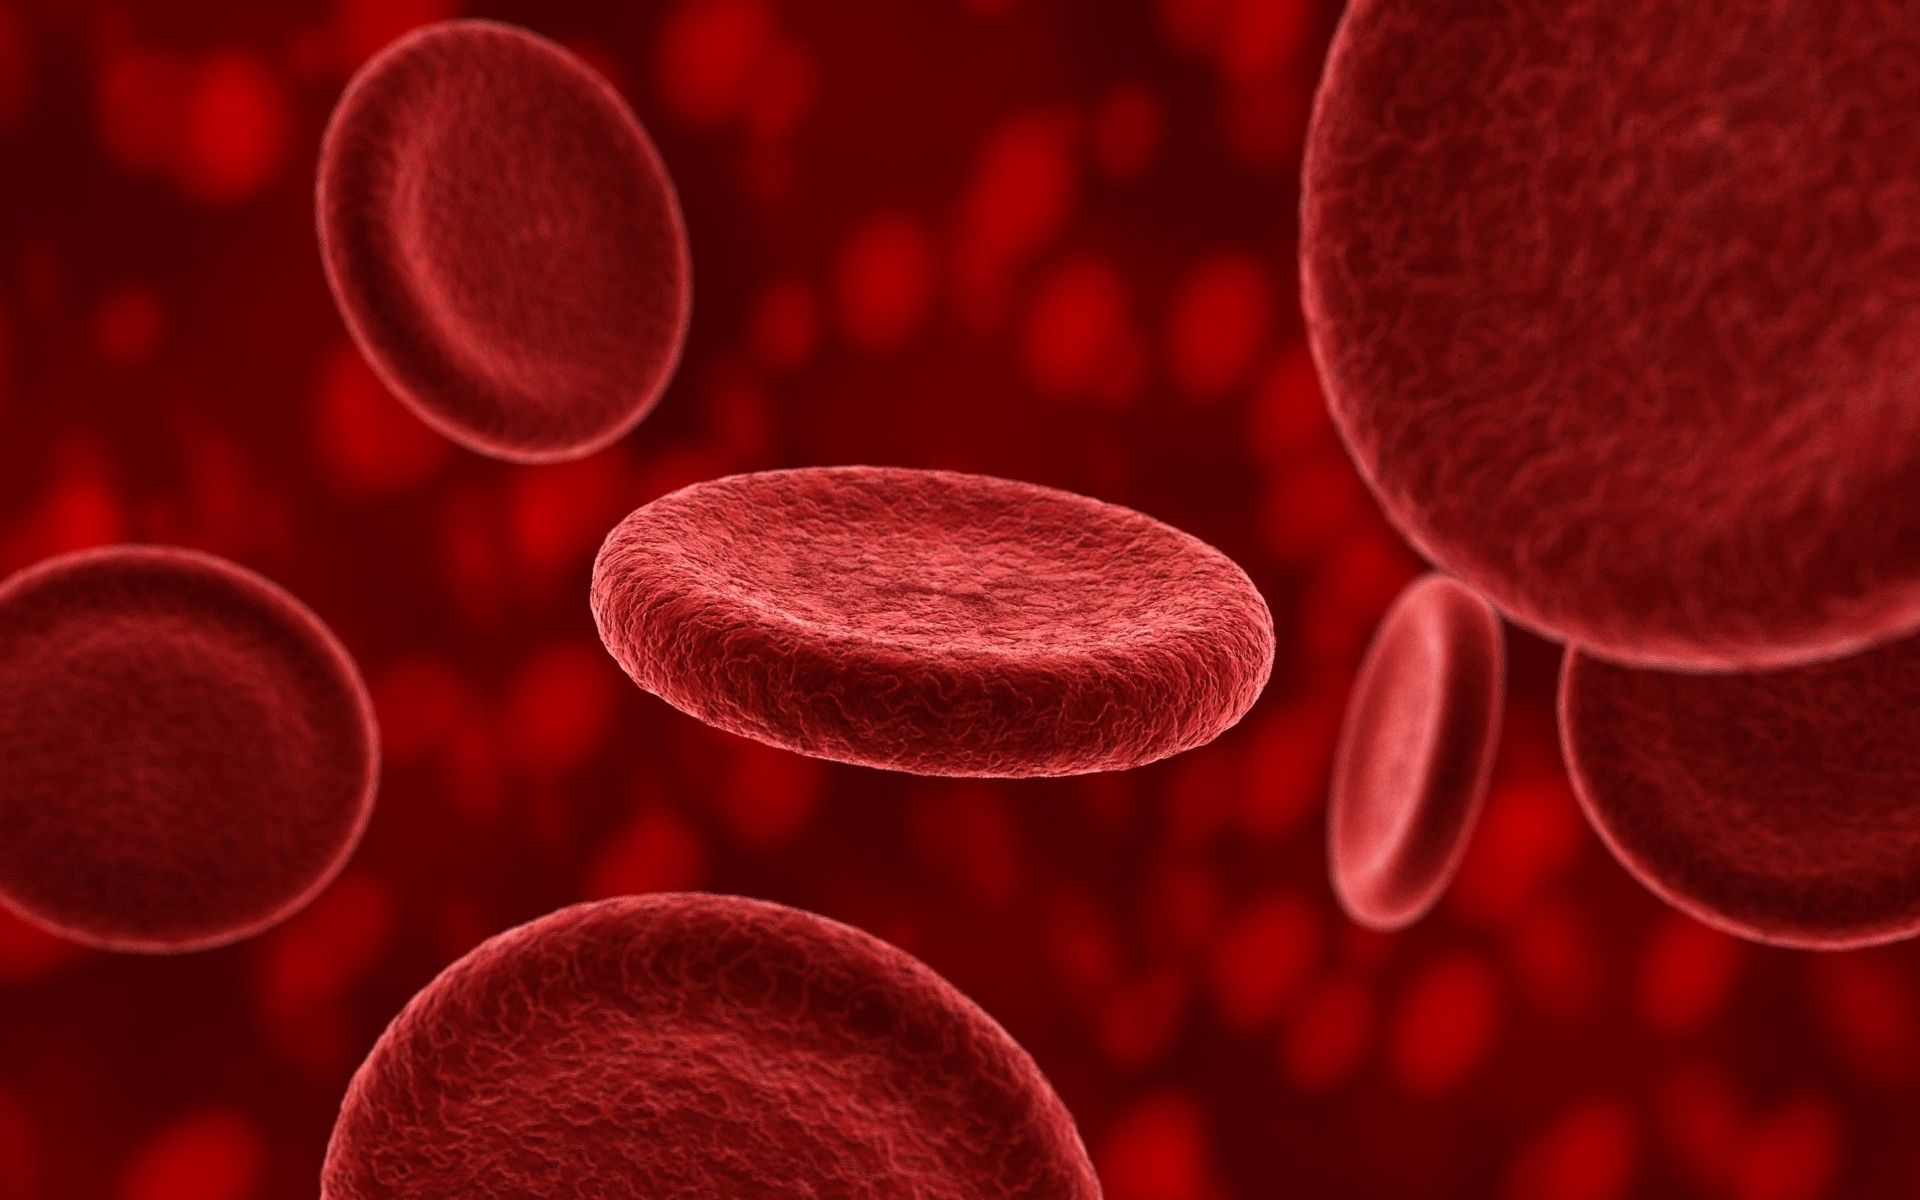 87065 download wallpaper Blood, Macro, Structure, Composition, Plasma, Erythrocytes screensavers and pictures for free